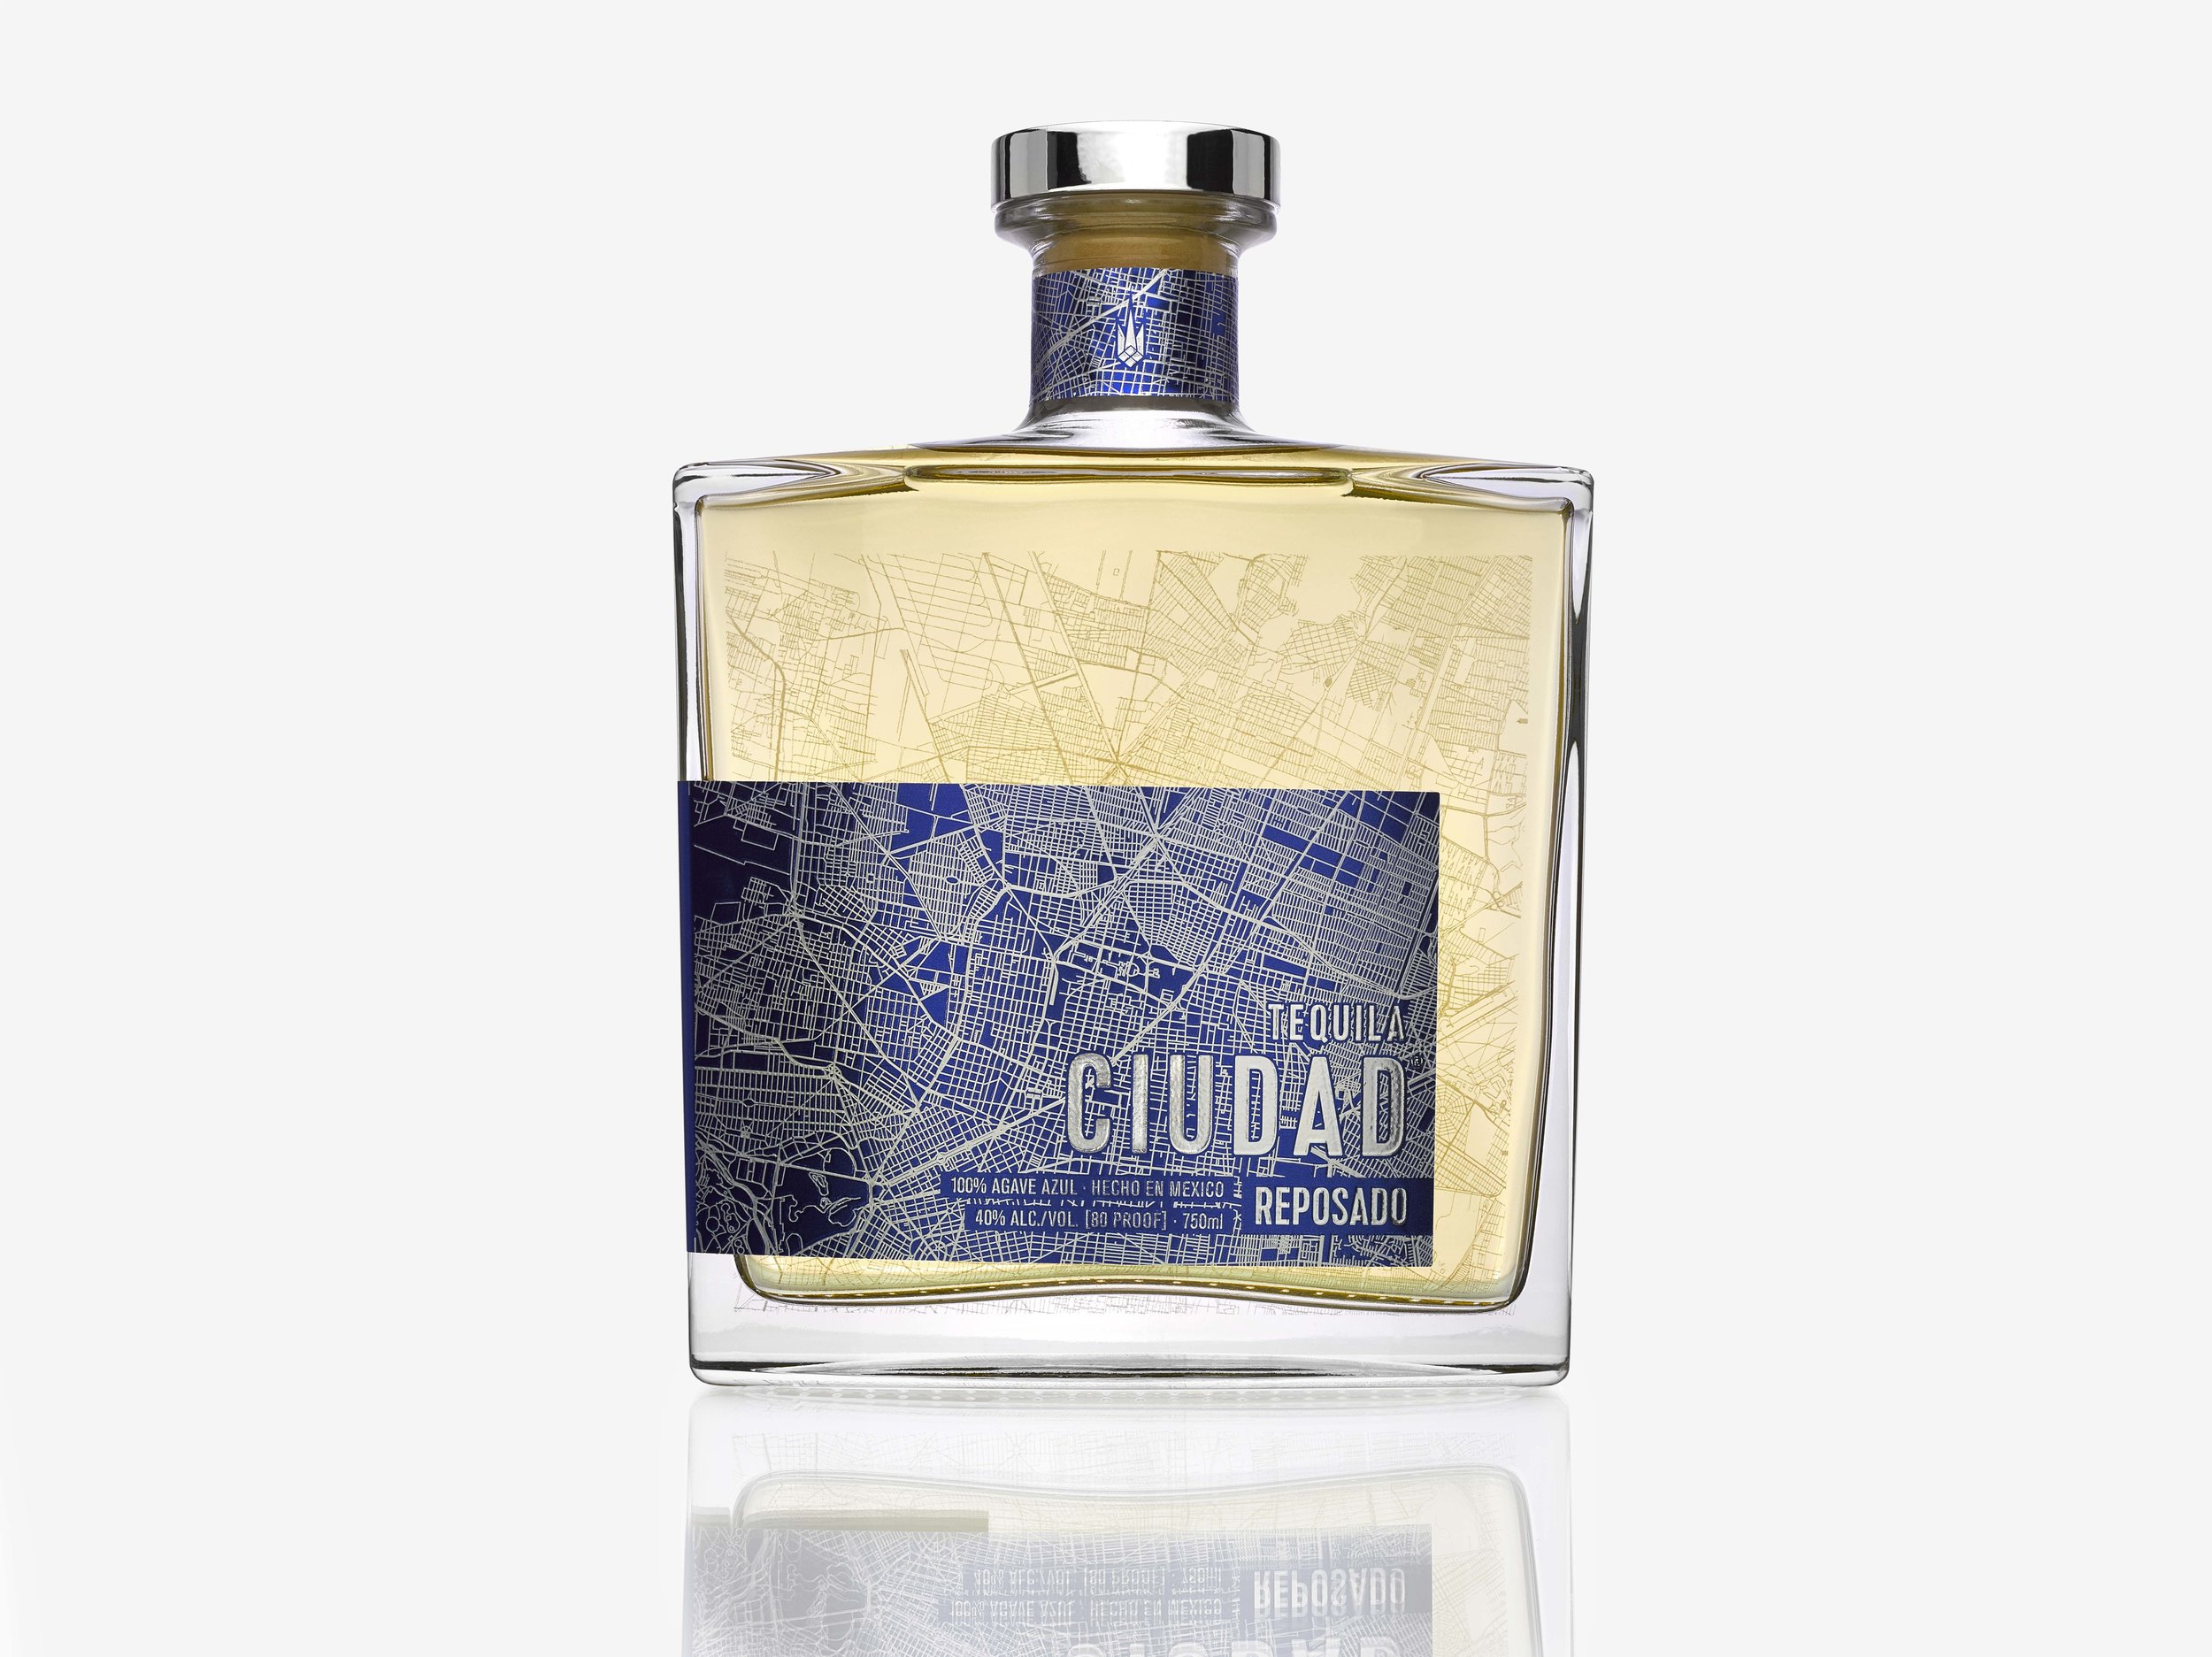 LET'S MAKE IT CLEAR, NOT ALL THINGS ARE CREATED EQUAL, ESPECIALLY WHEN IT COMES TO TEQUILA.  MADE IN THE HIGHLANDS OF MEXICO; WHERE THE SOIL IS RED AND OUR AGAVE IS BURSTING WITH FLAVOR, IS WHERE WE START THE HUSTLE TO MAKE THE BEST TEQUILA, CIUDAD. -